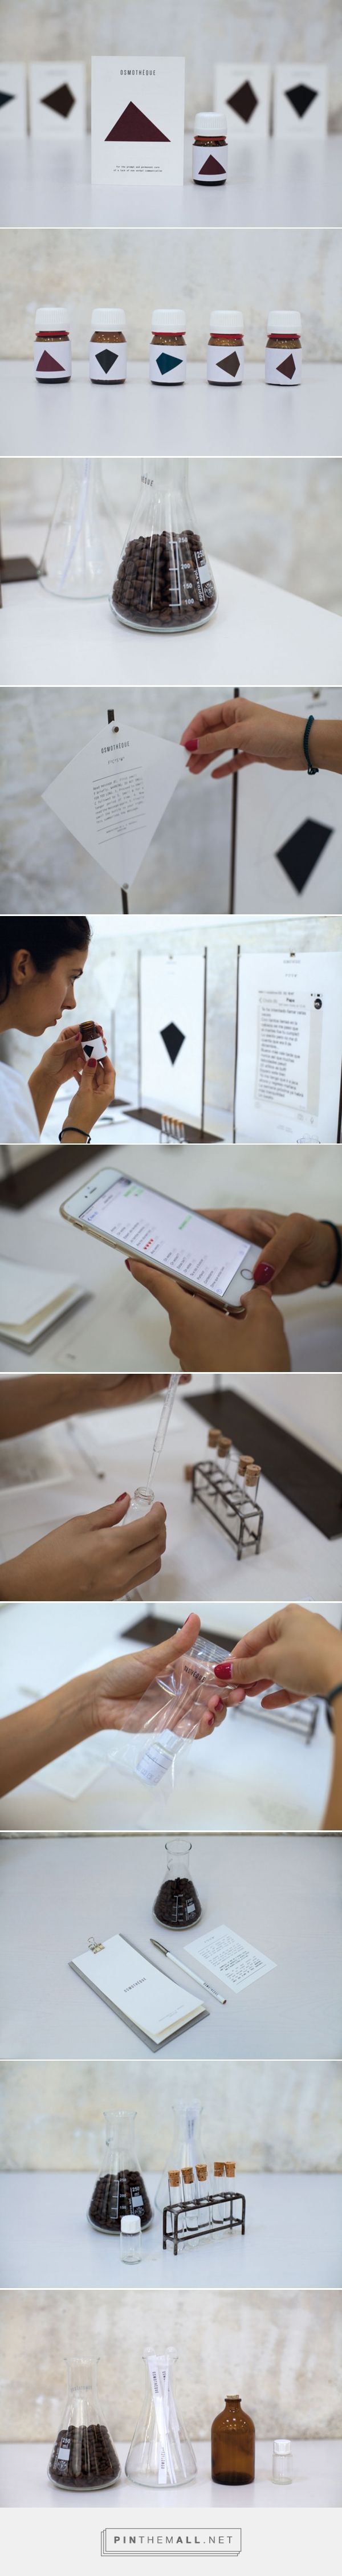 osmothèque laboratory translates whatsapp messages into smells - created via http://pinthemall.net